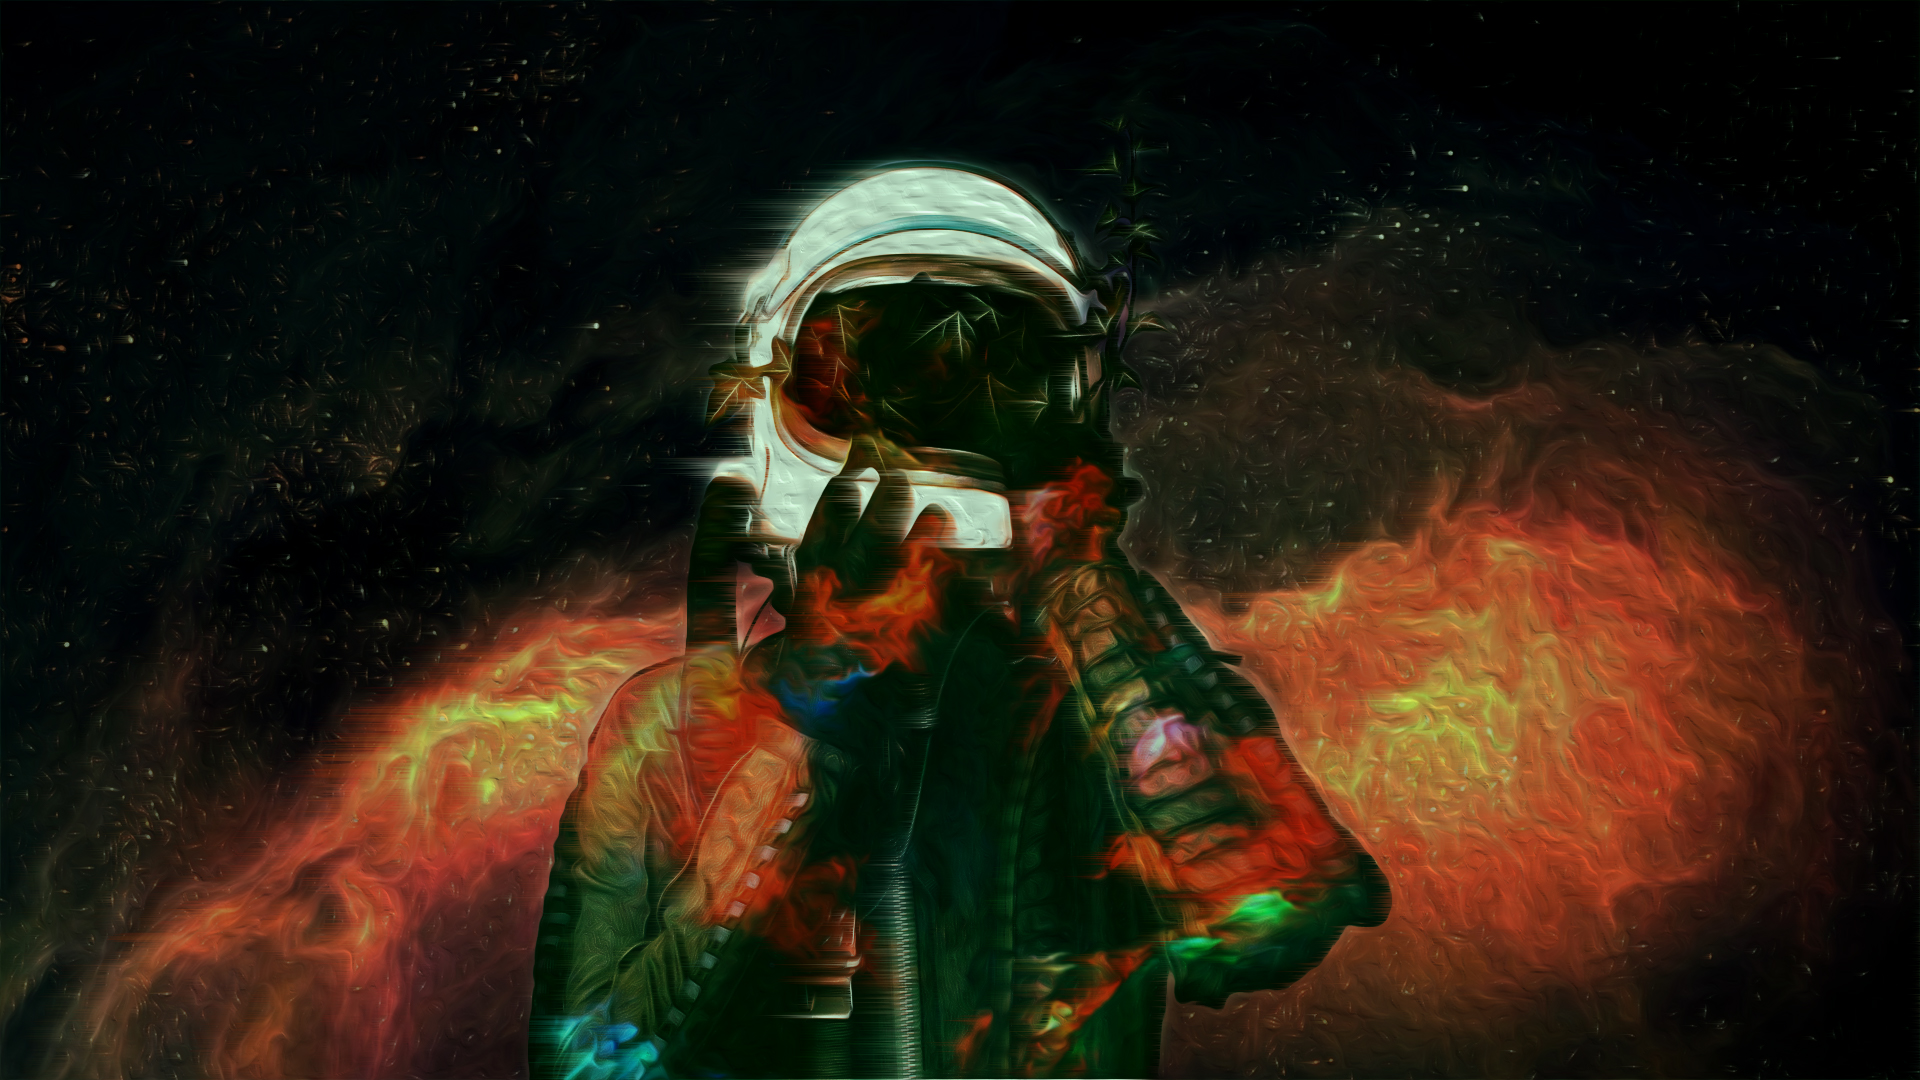 Astronaut Space Abstract Hd Artist 4k Wallpapers Images Backgrounds Photos And Pictures